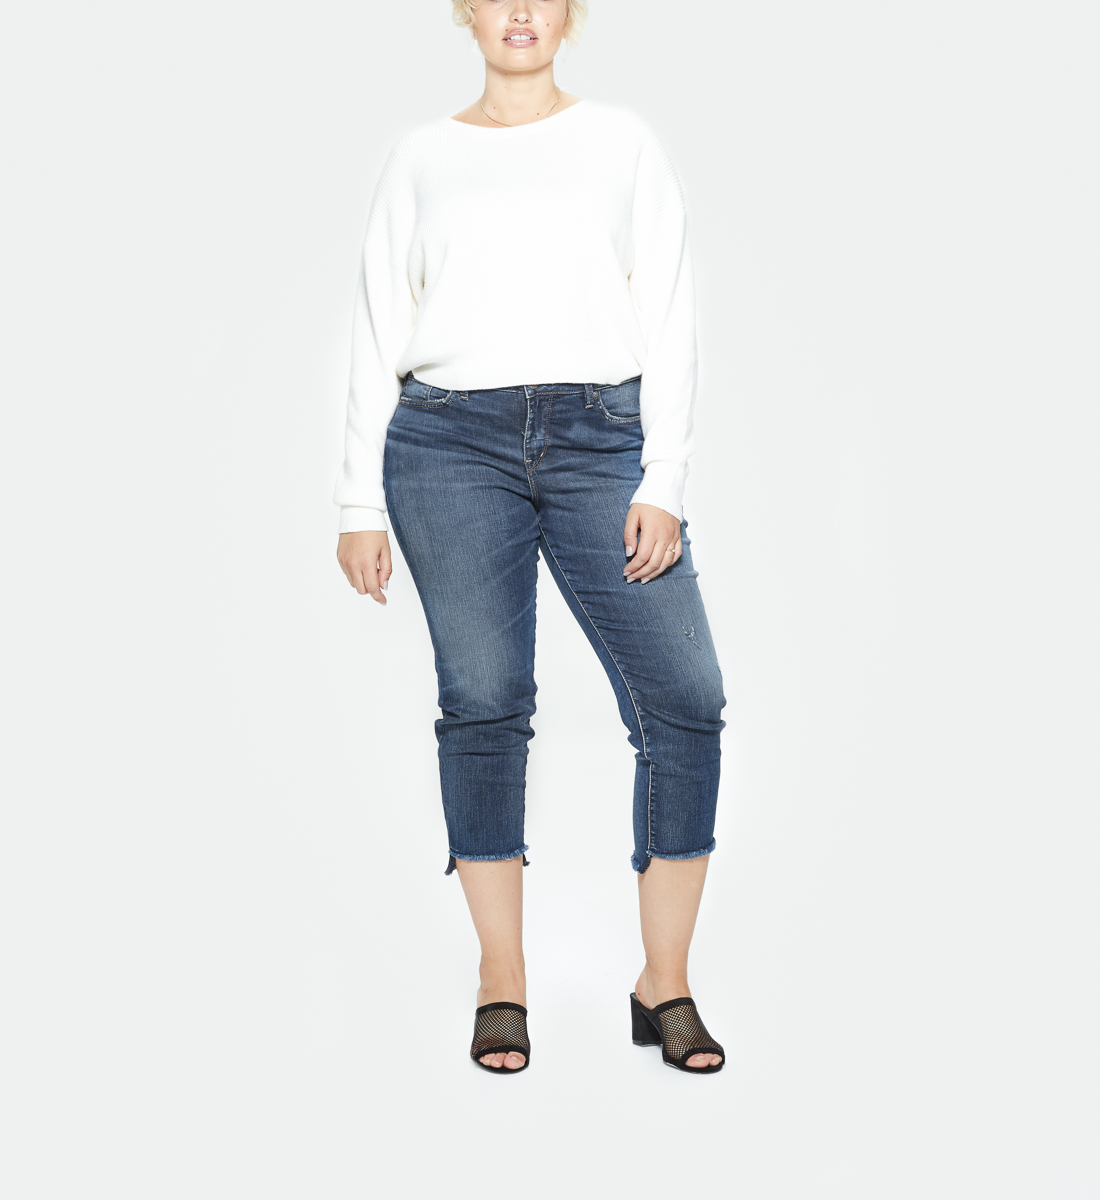 b4a1c0b6 Avery High Rise Skinny Crop Jeans Plus Size, , hi-res